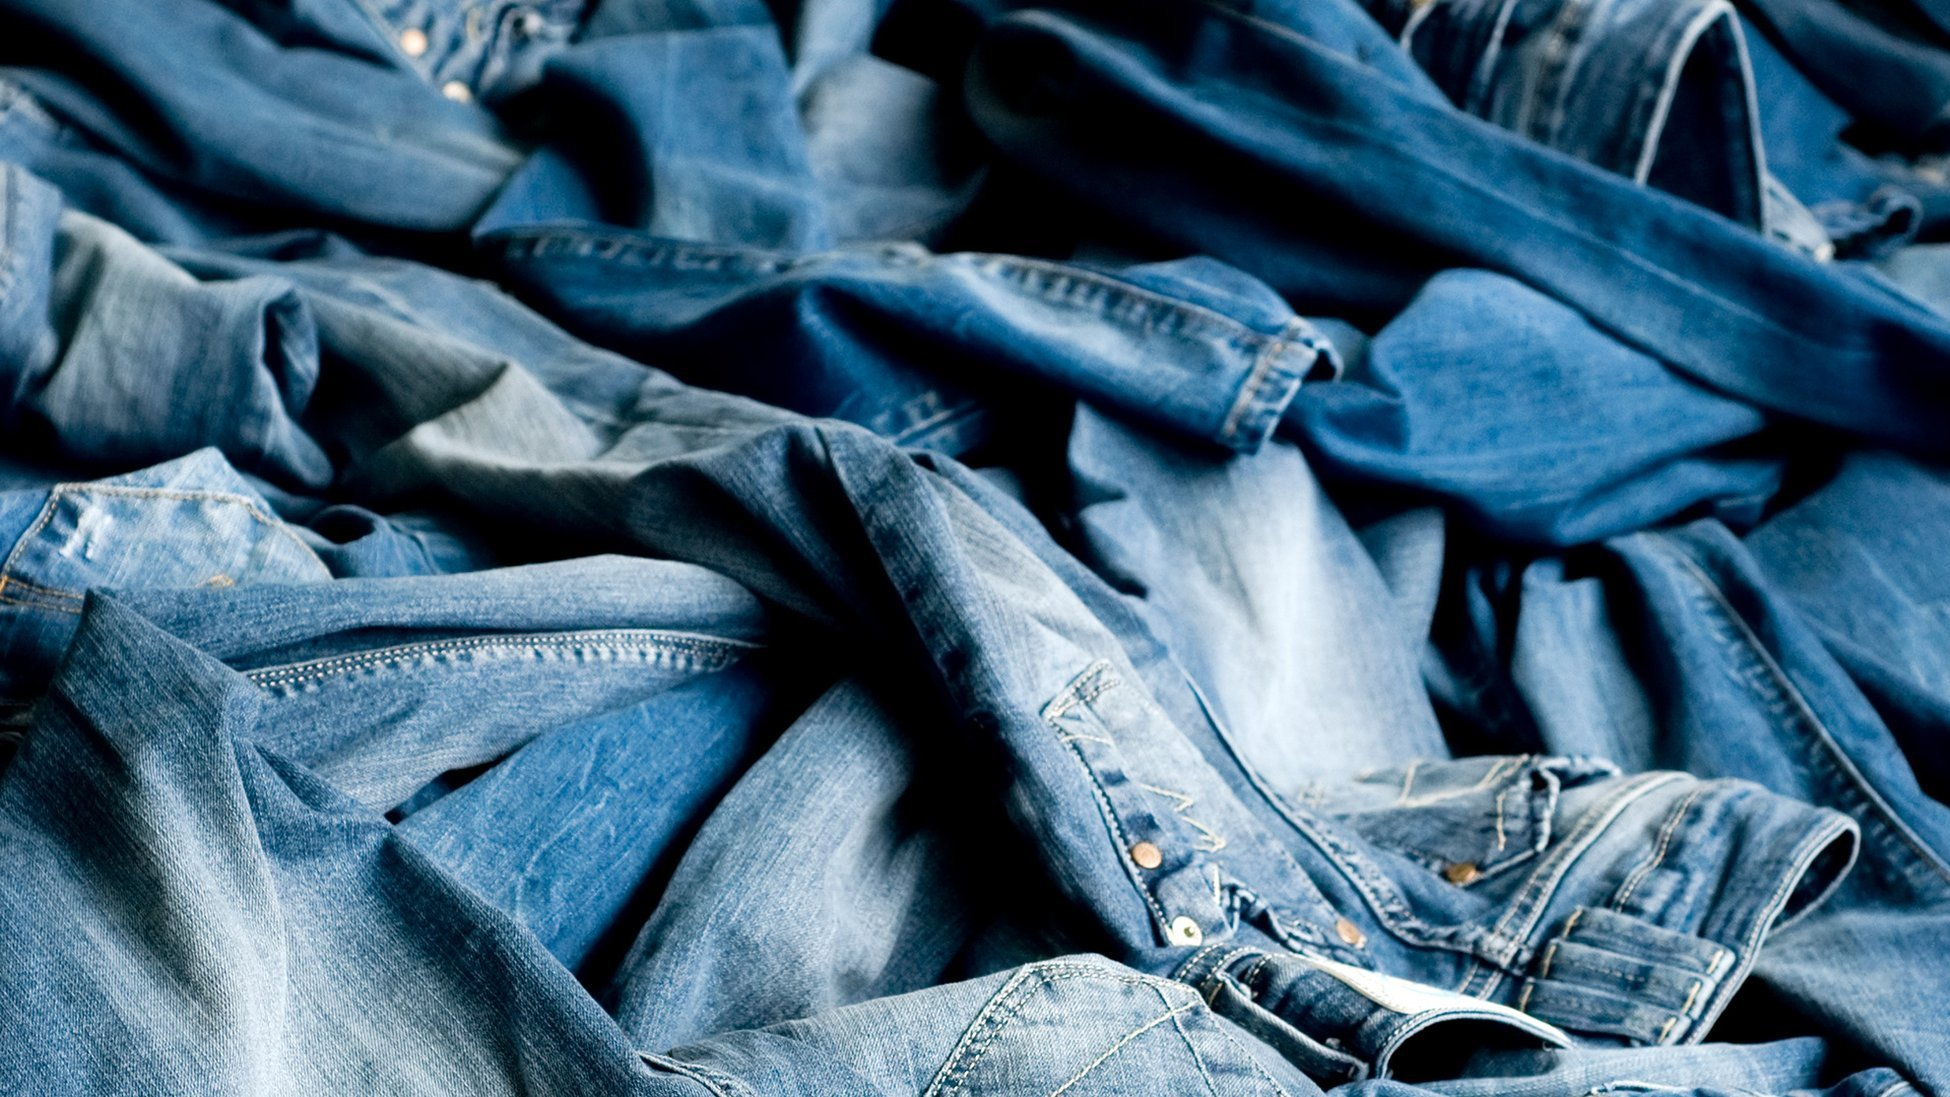 The Most Sustainable Denim Brands for Your Ethical Wardrobe